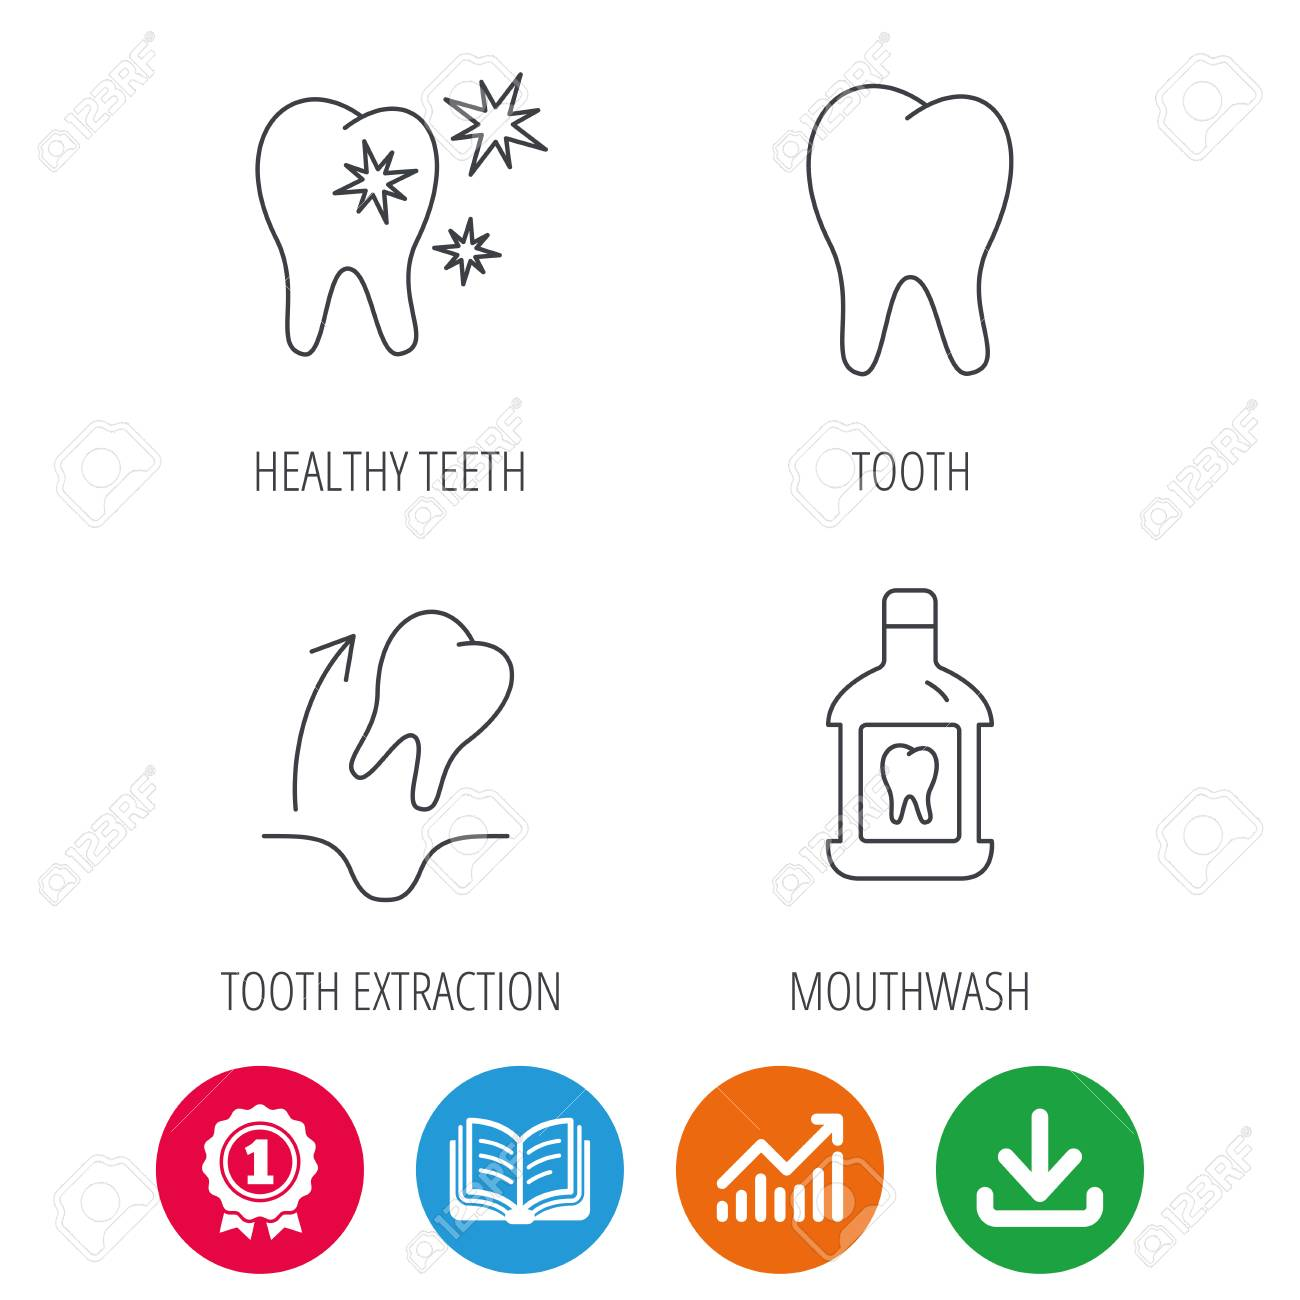 tooth mouthwash and healthy teeth icons tooth extraction linear sign award medal